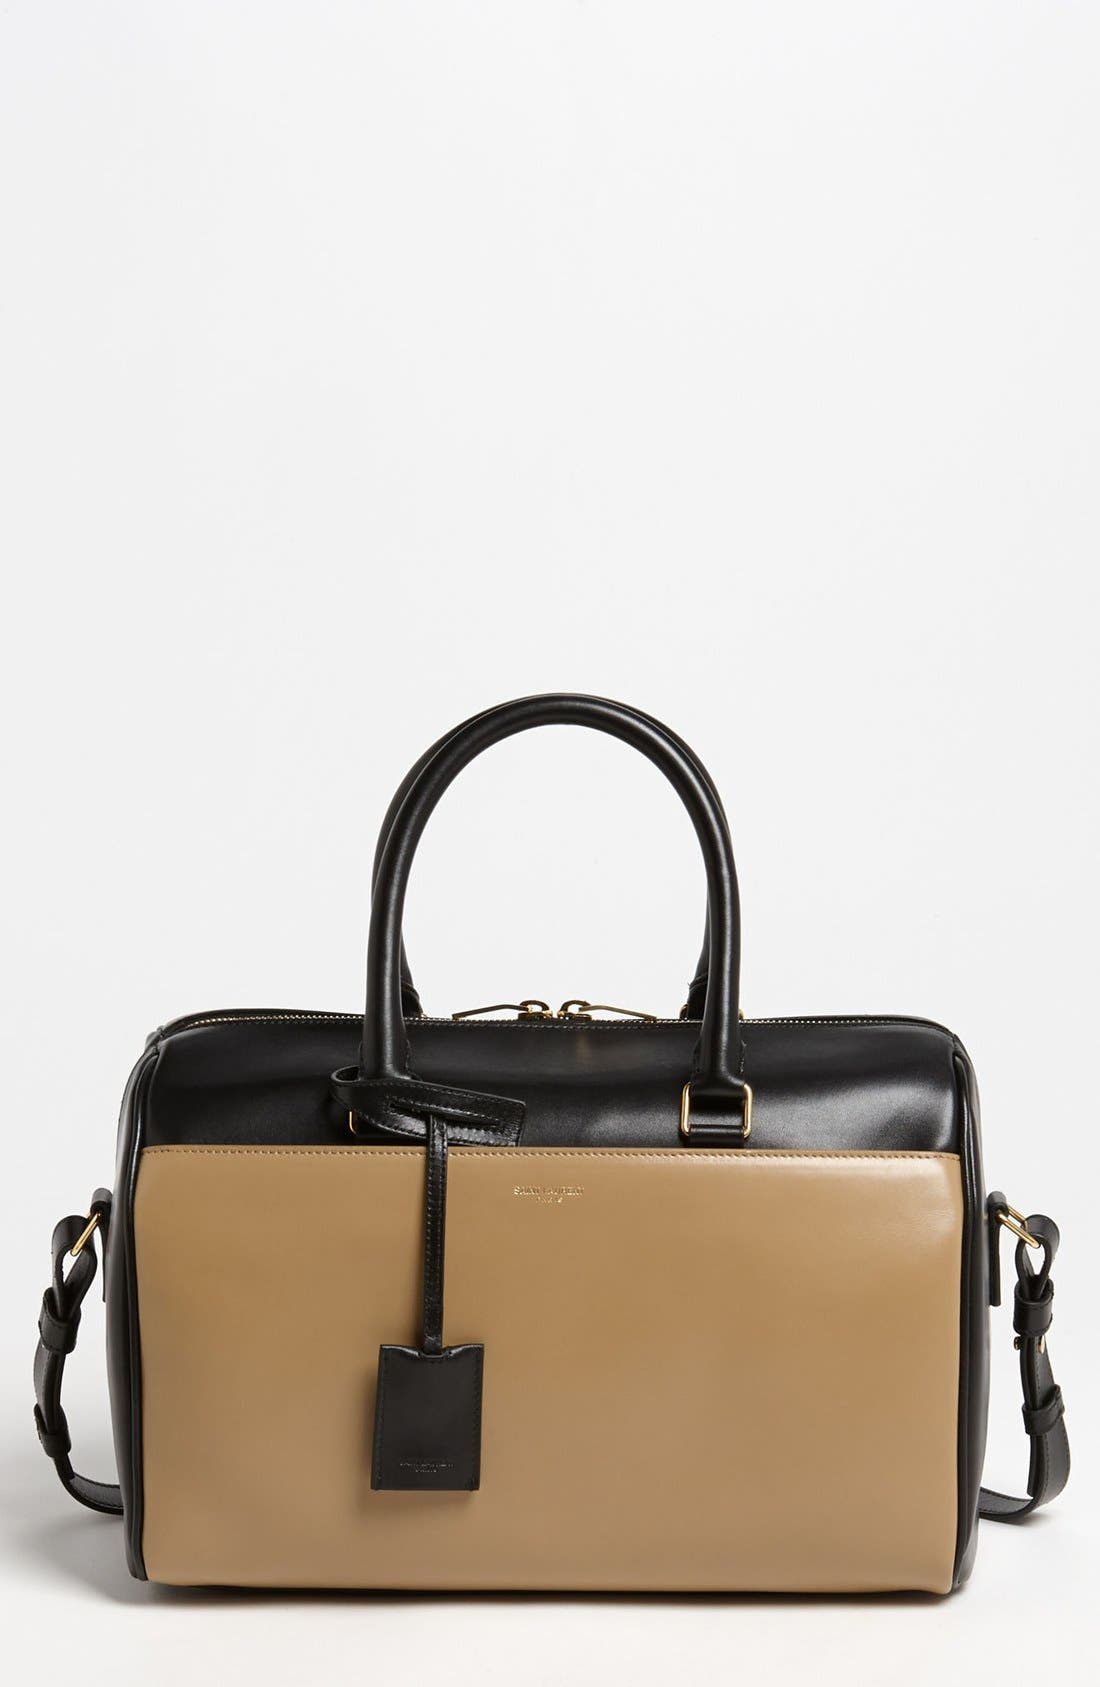 Alternate Image 1 Selected - Saint Laurent 'Duffel 6' Leather Satchel